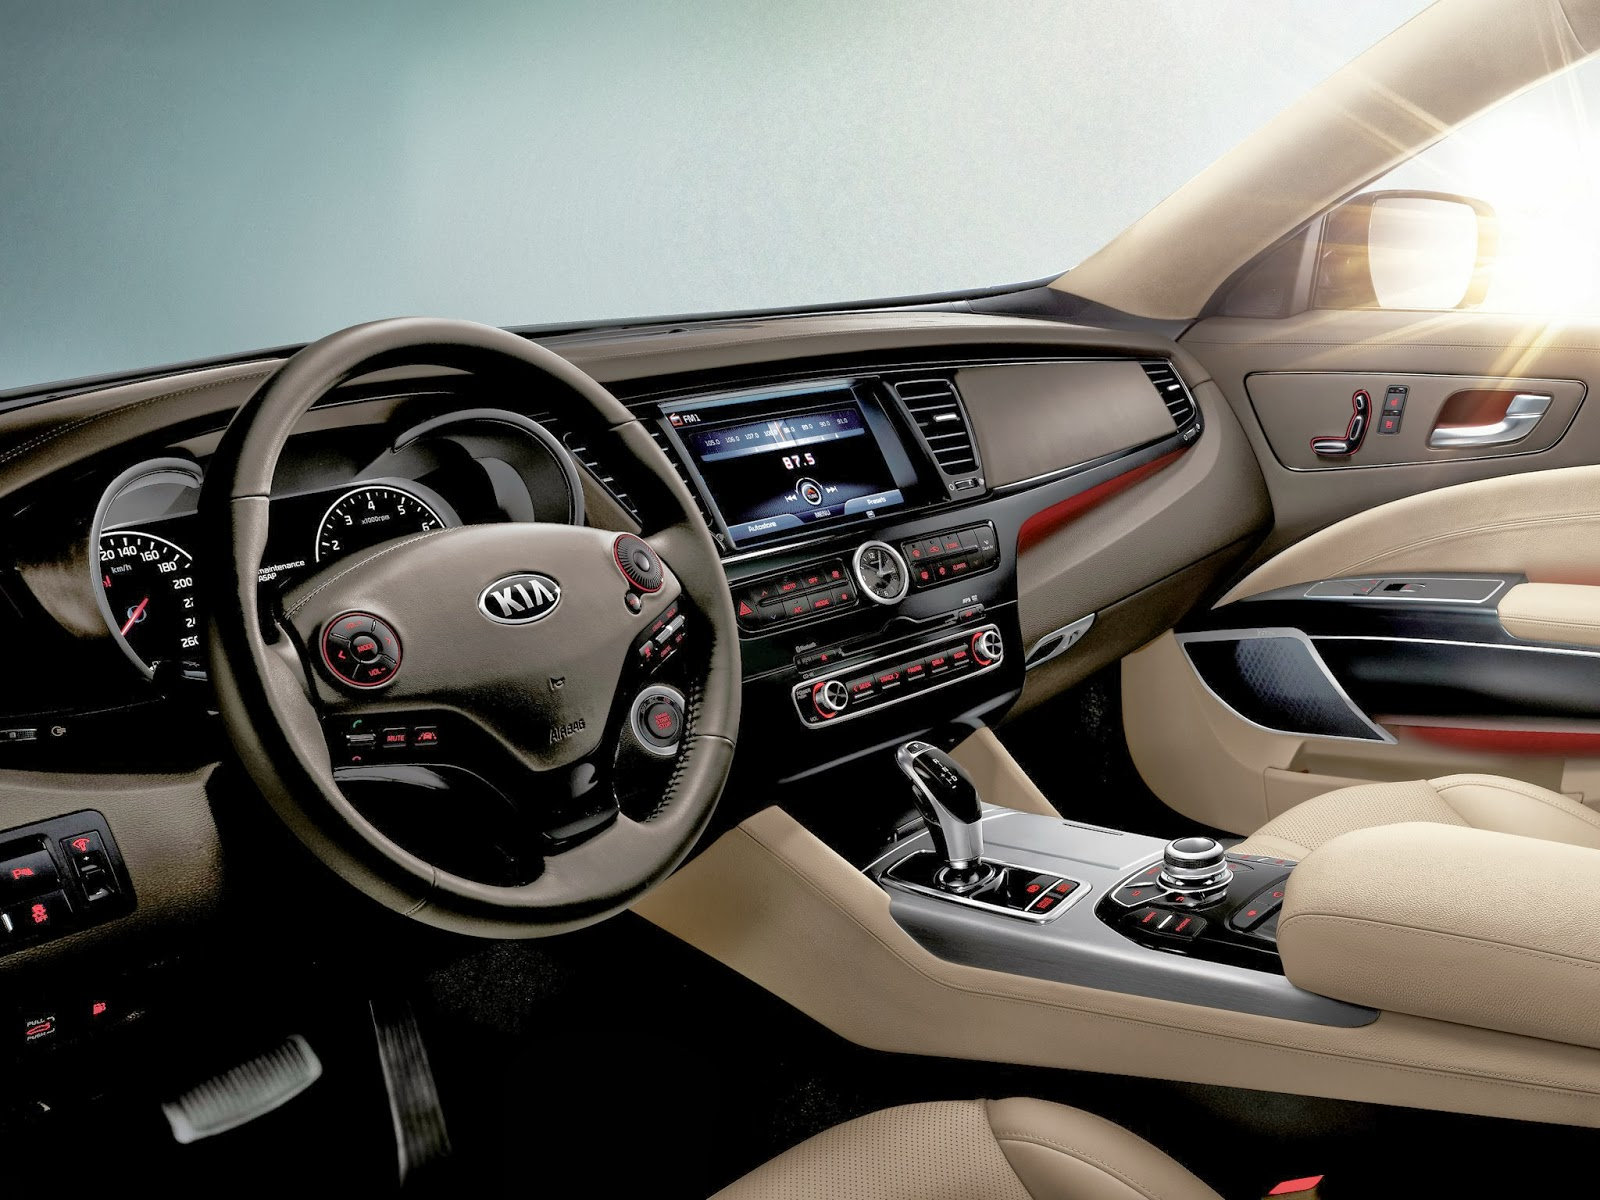 Kia Quoris 3.8 2014 photo - 2